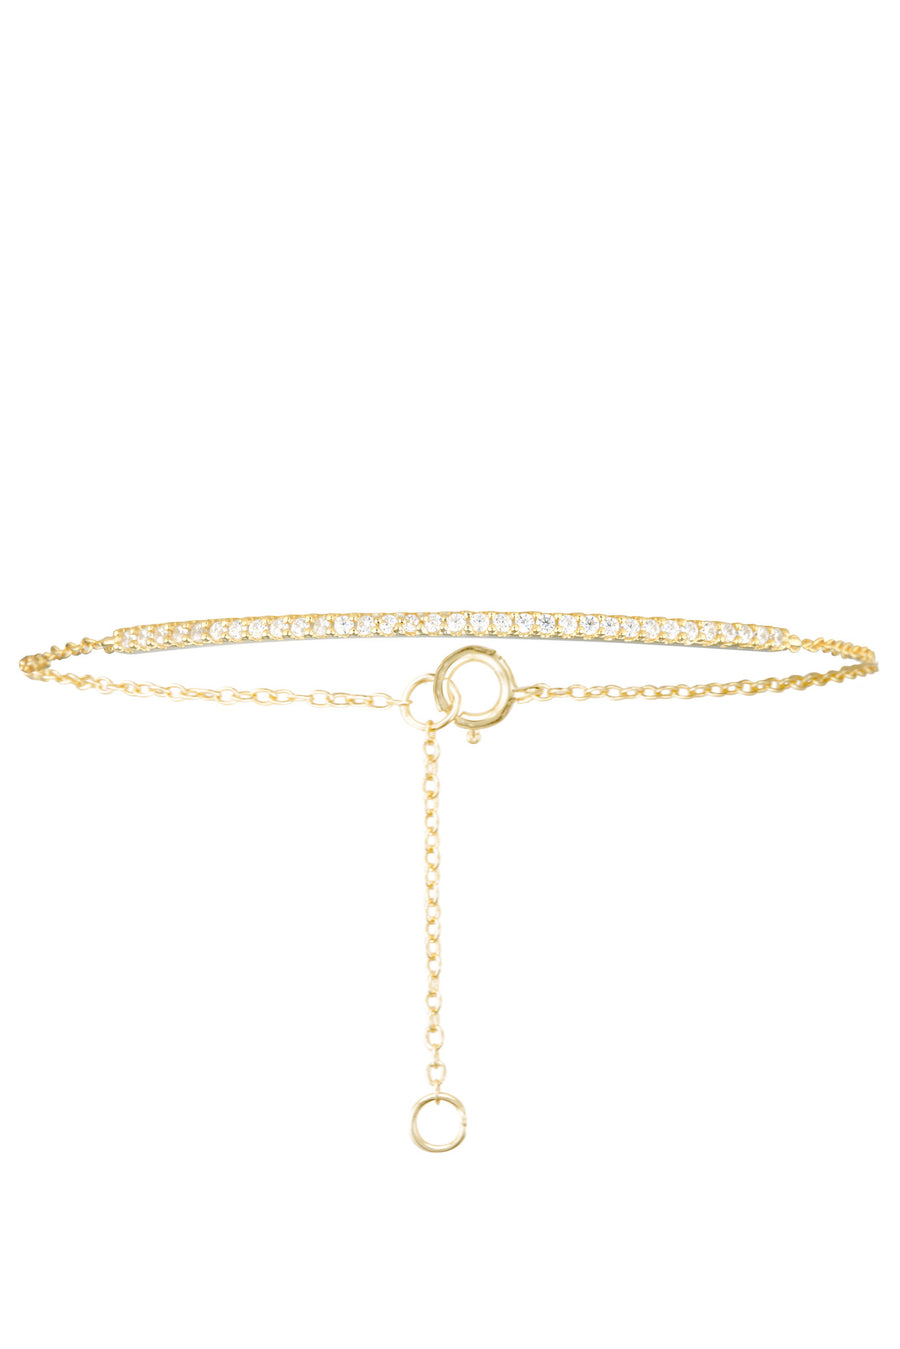 Layla Bracelet in Gold - HER Empire Fashion Boutique Terrigal & Online